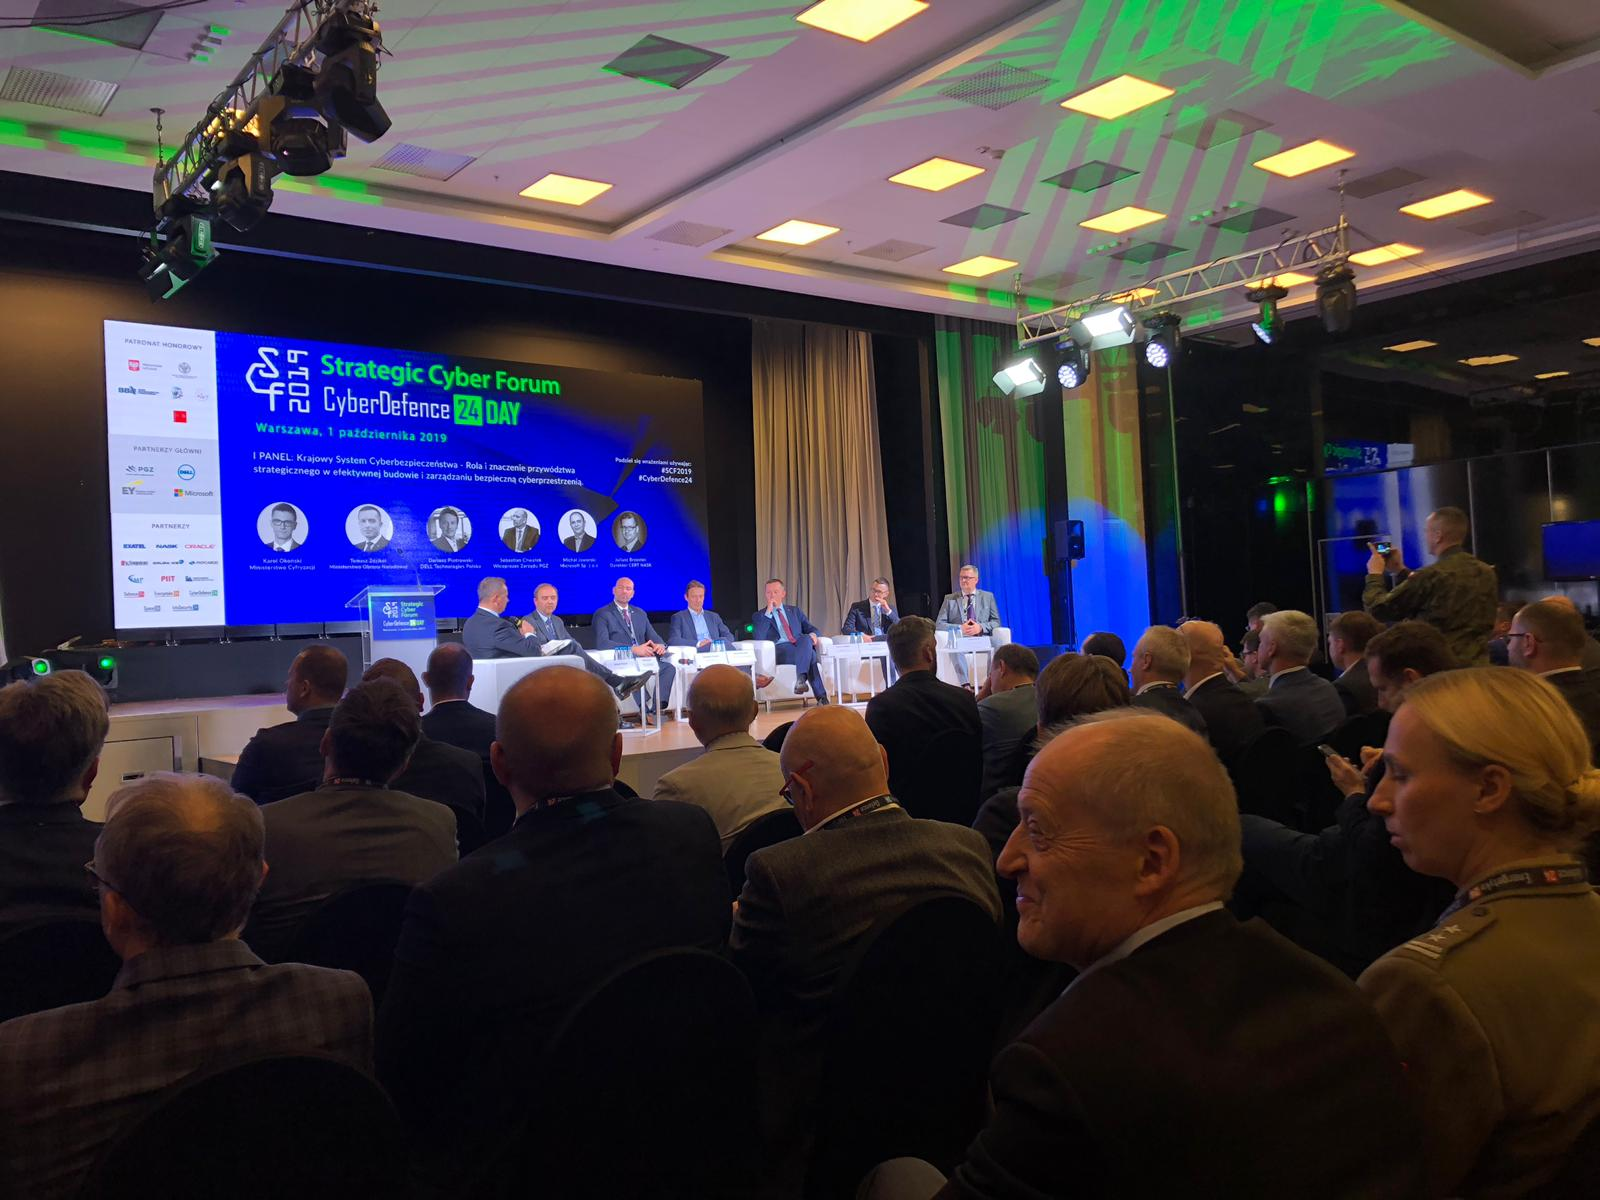 Strategic Cyber Forum – CyberDefence24 Day